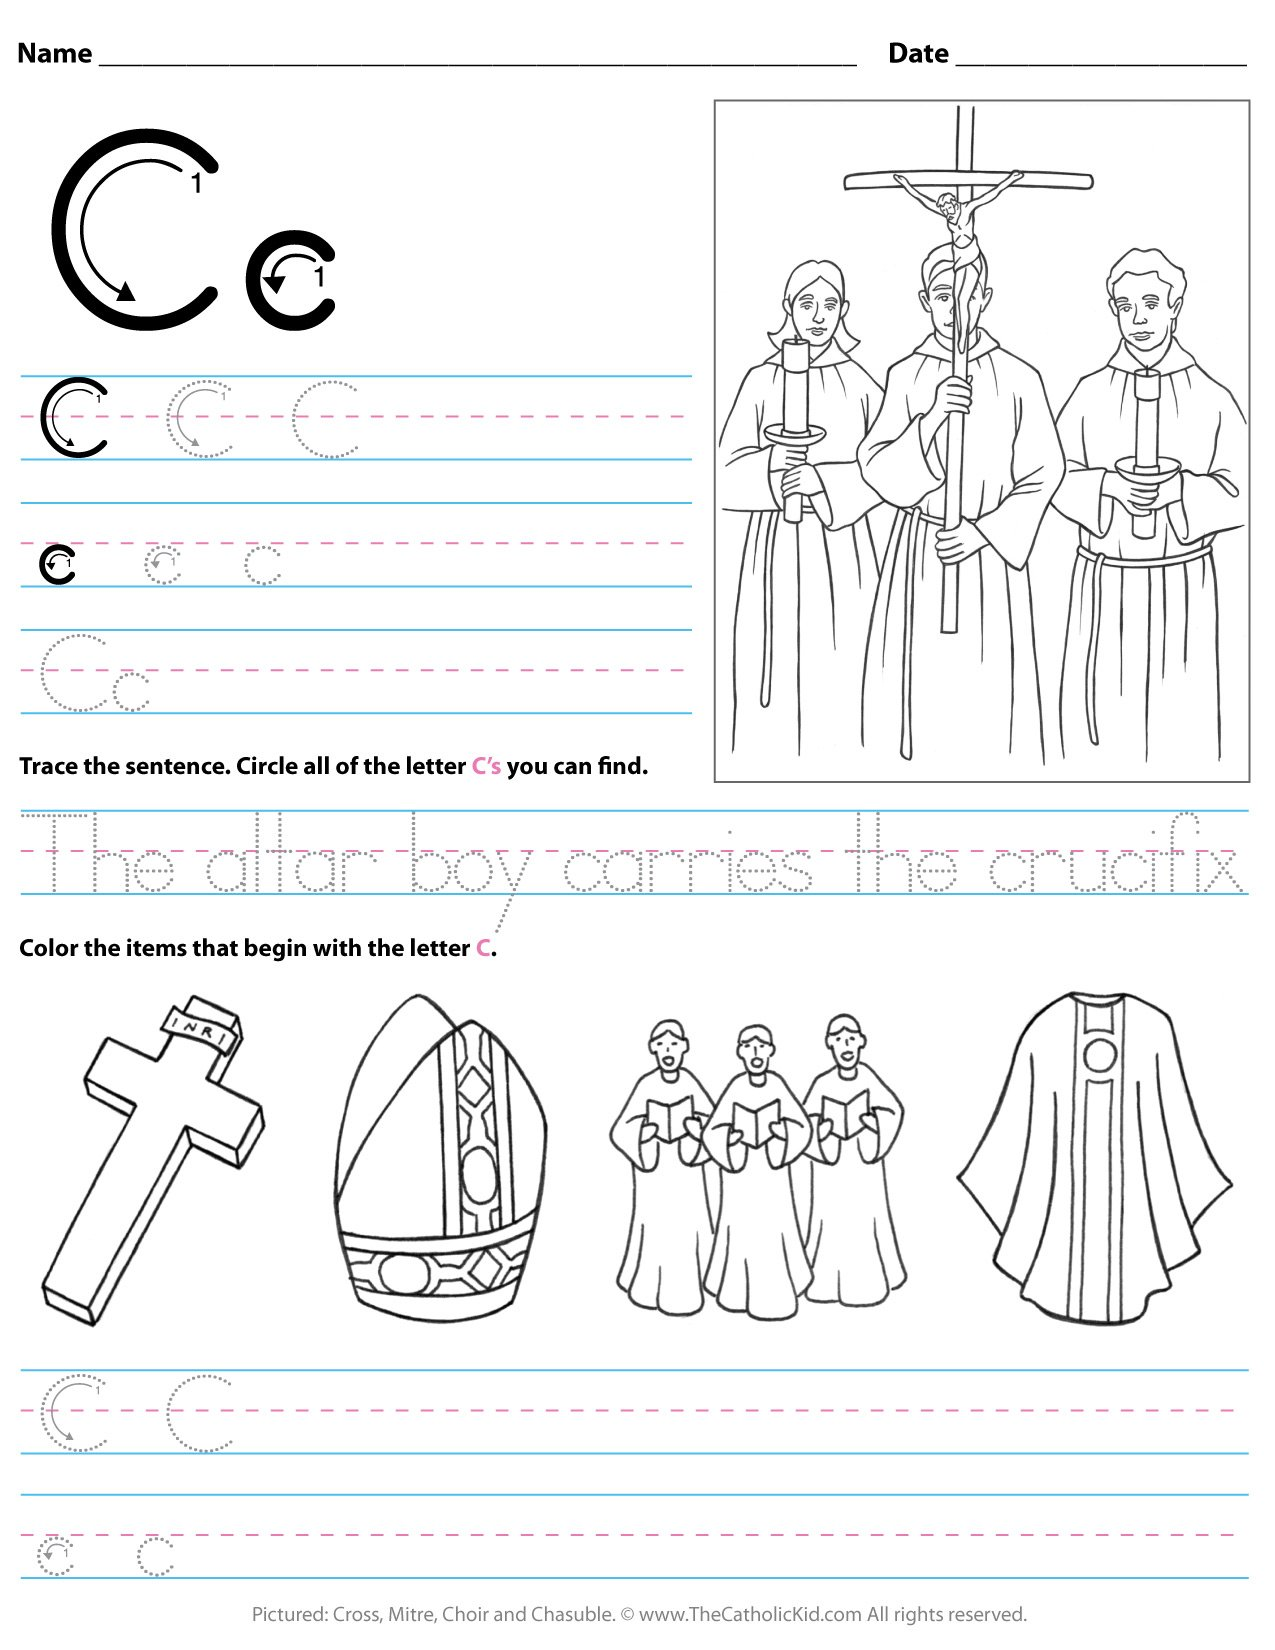 Catholic Alphabet Letter C Worksheet Preschool Kindergarten Thecatholickid Com